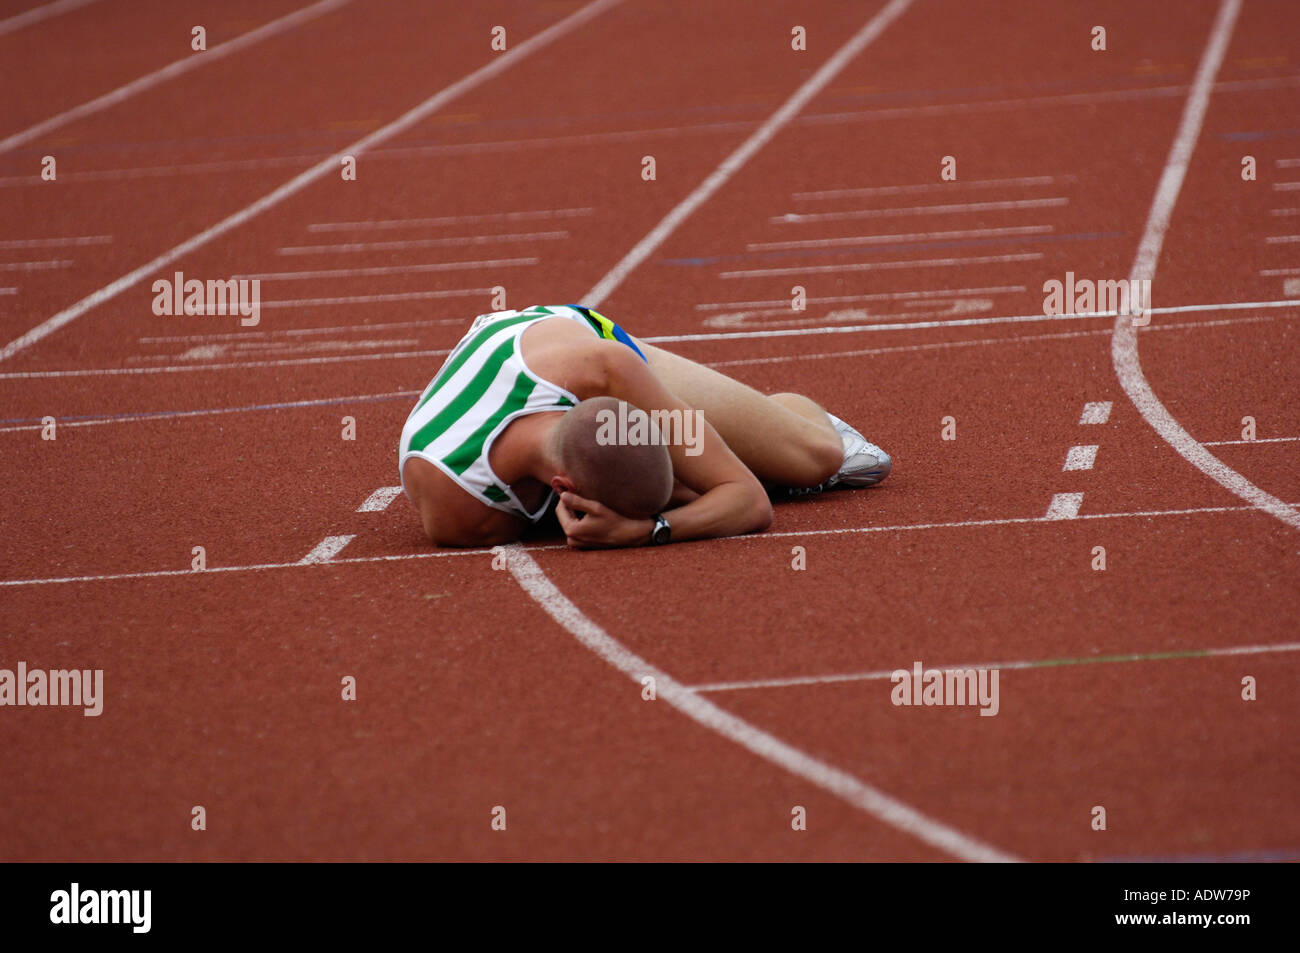 Athlete exhausted after race - Stock Image